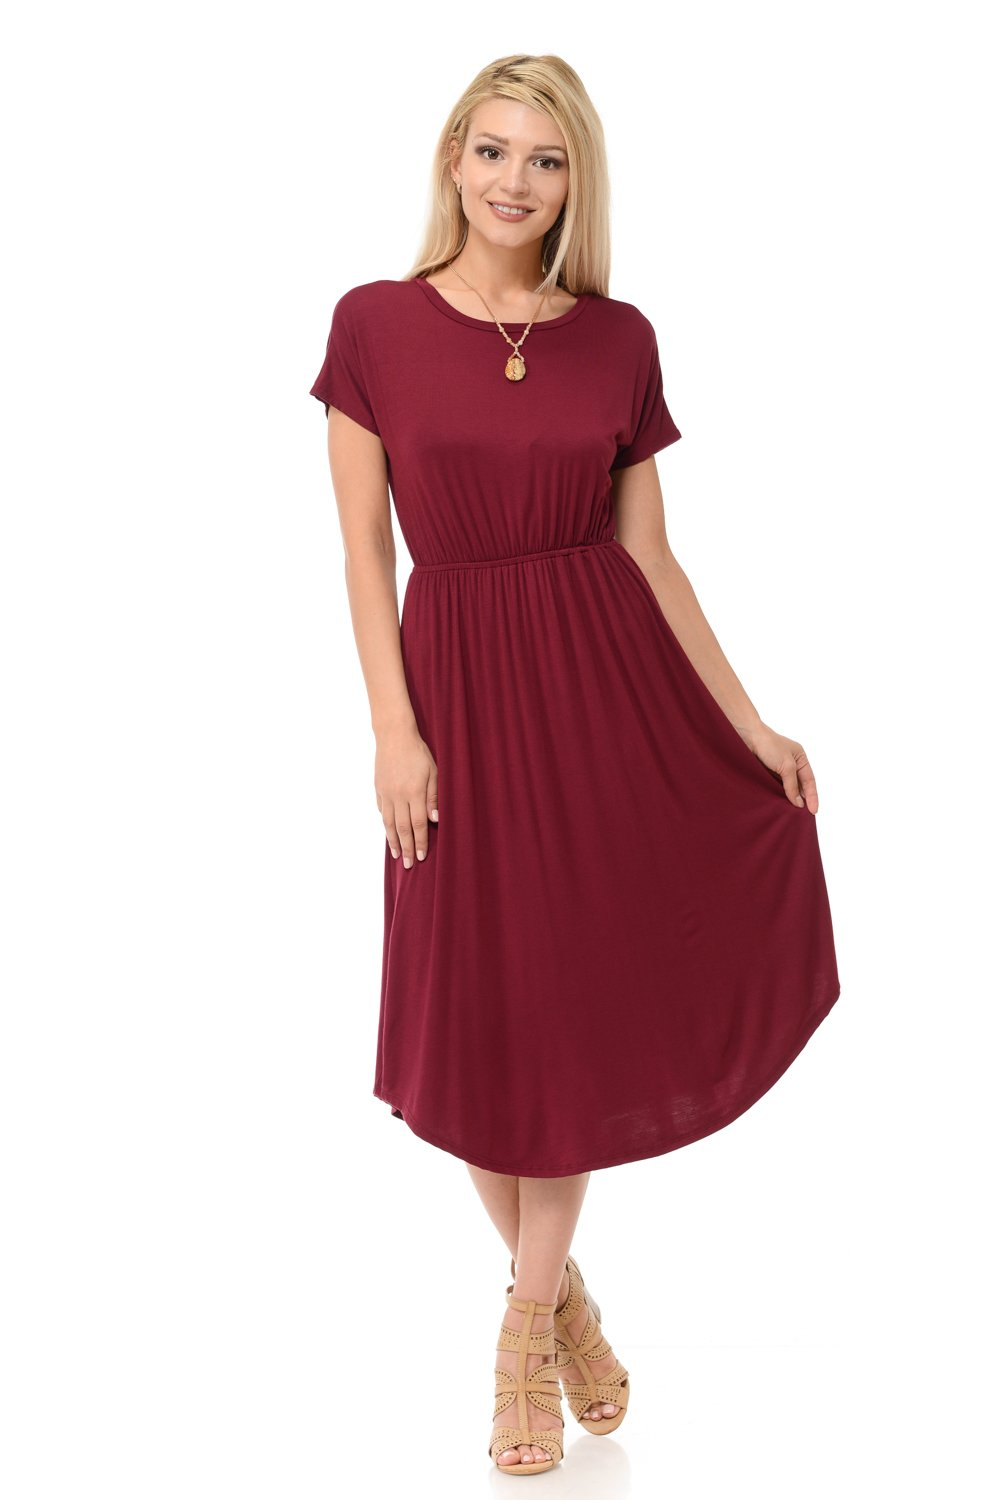 iconic luxe Women's Solid Short Sleeve Flare Midi Dress with Pockets Medium Burgundy